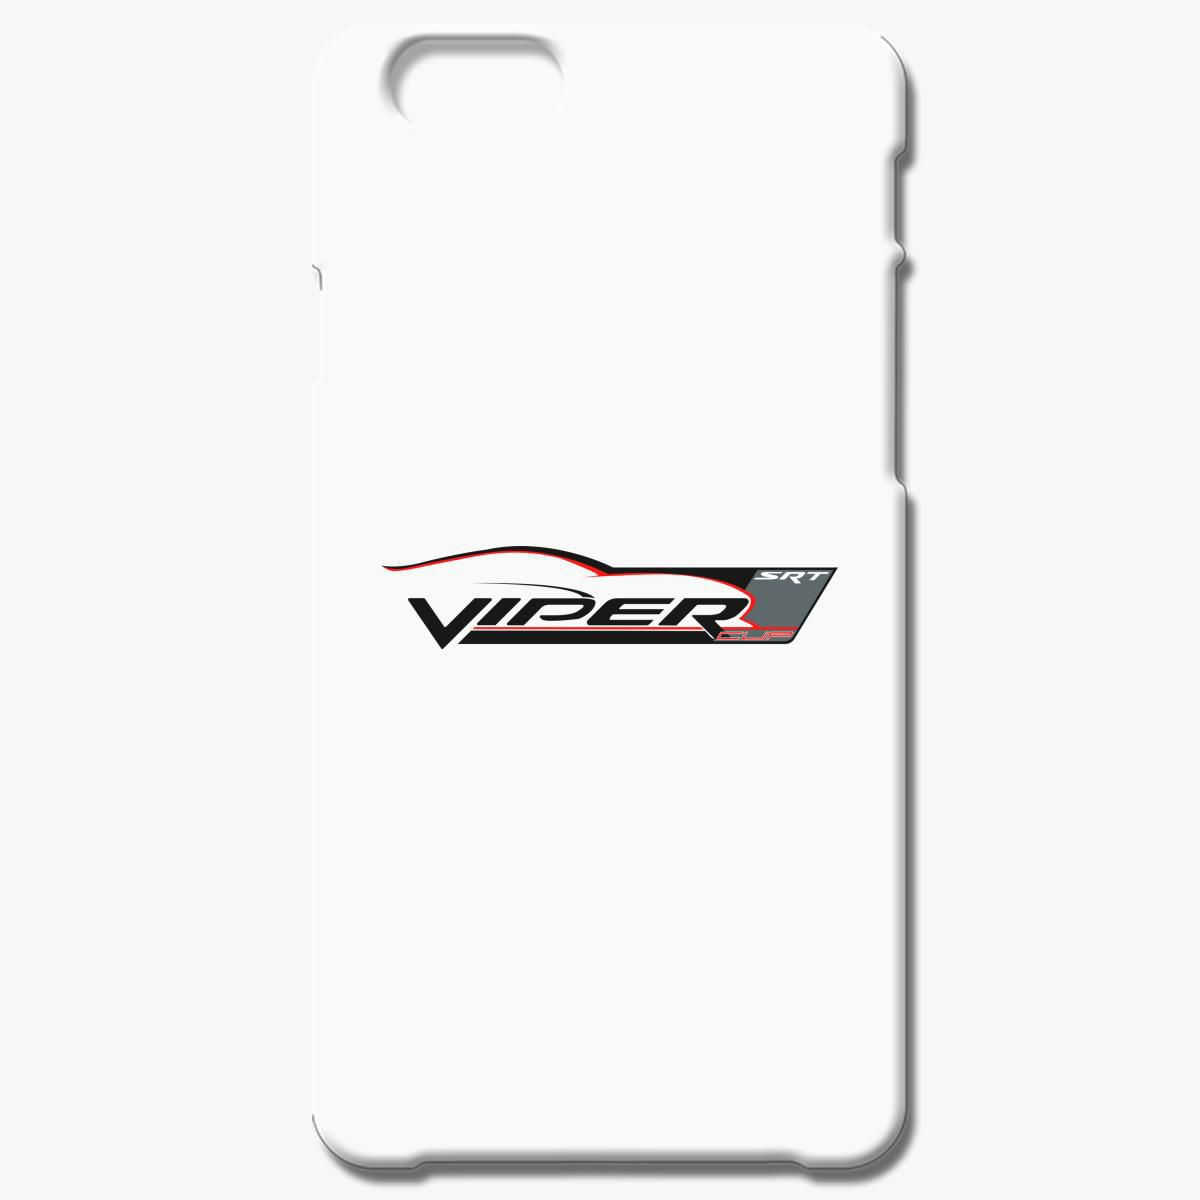 Dodge Viper Iphone 6 6s Plus Case